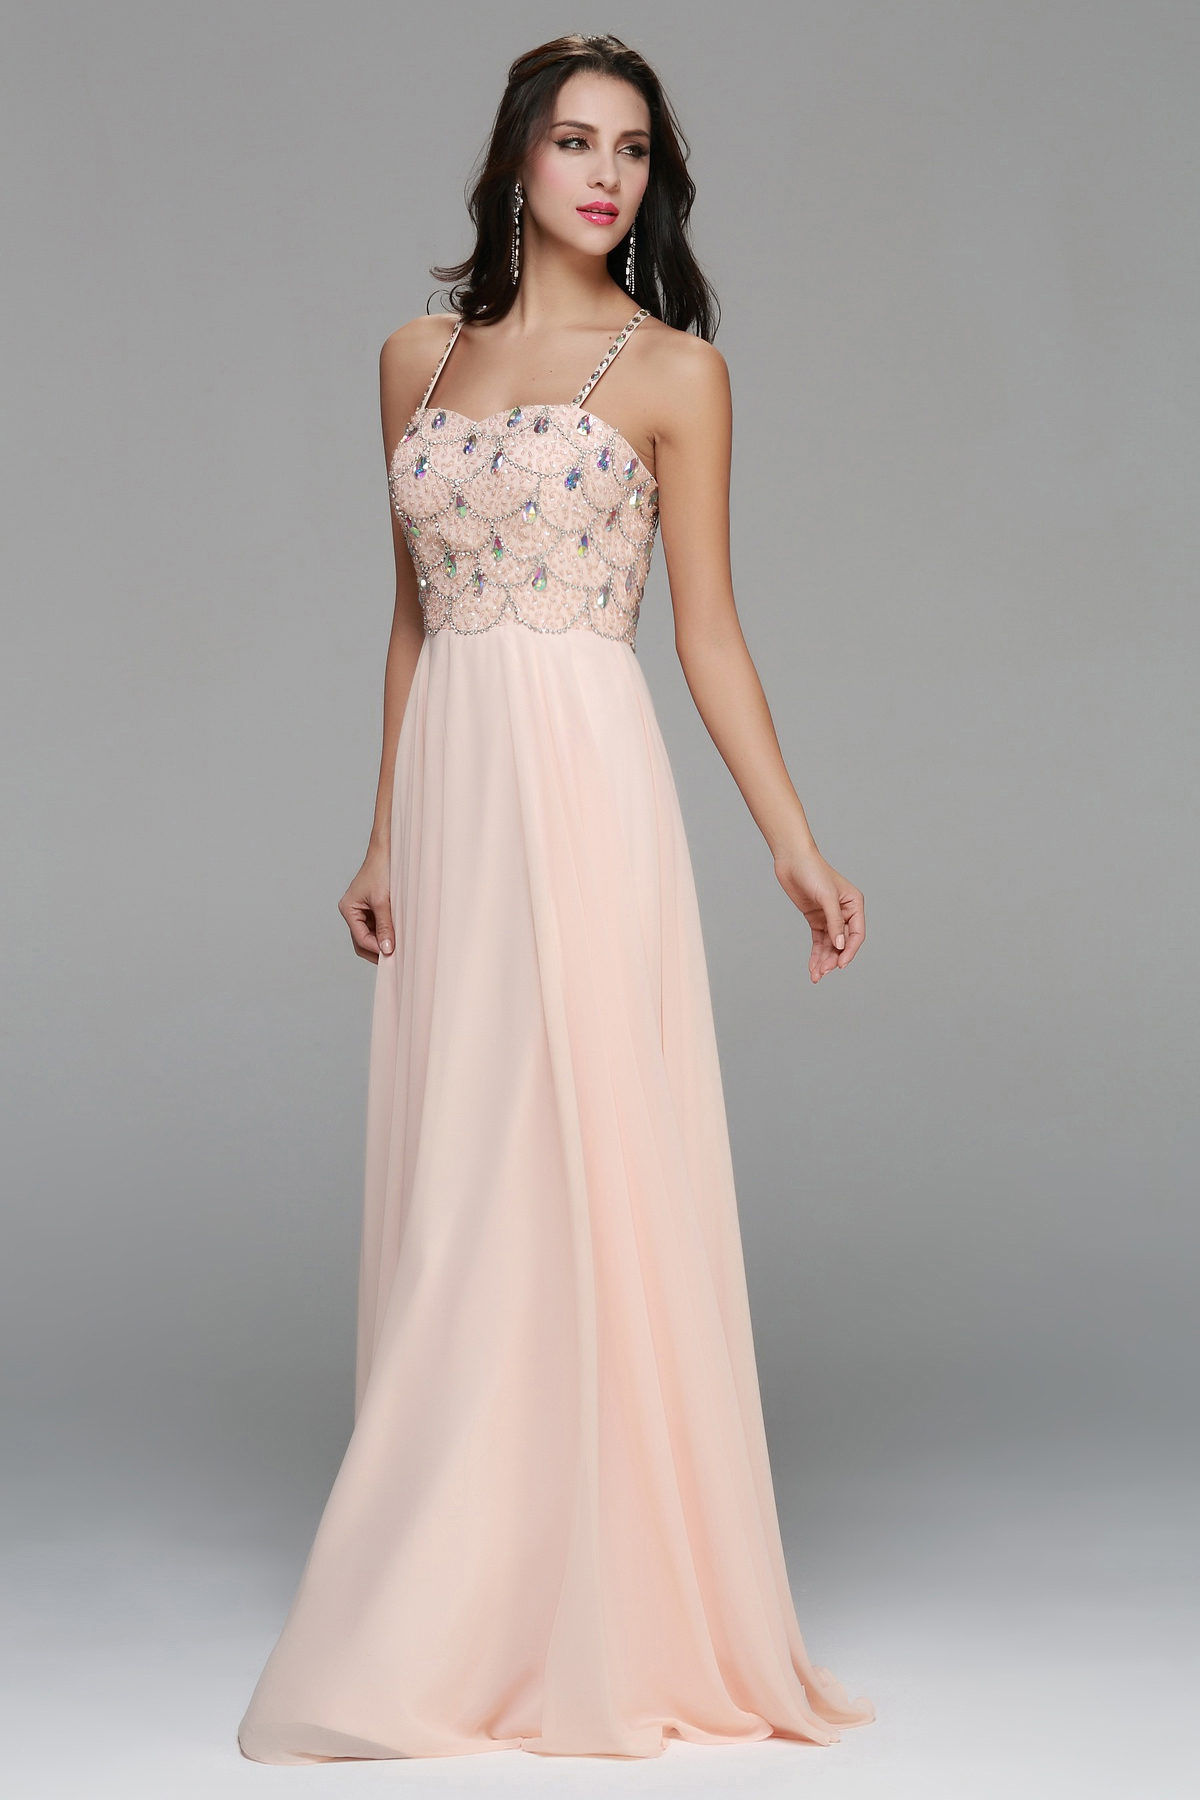 Sparkling Beaded Bodice A-line Long Chiffon Prom Dress